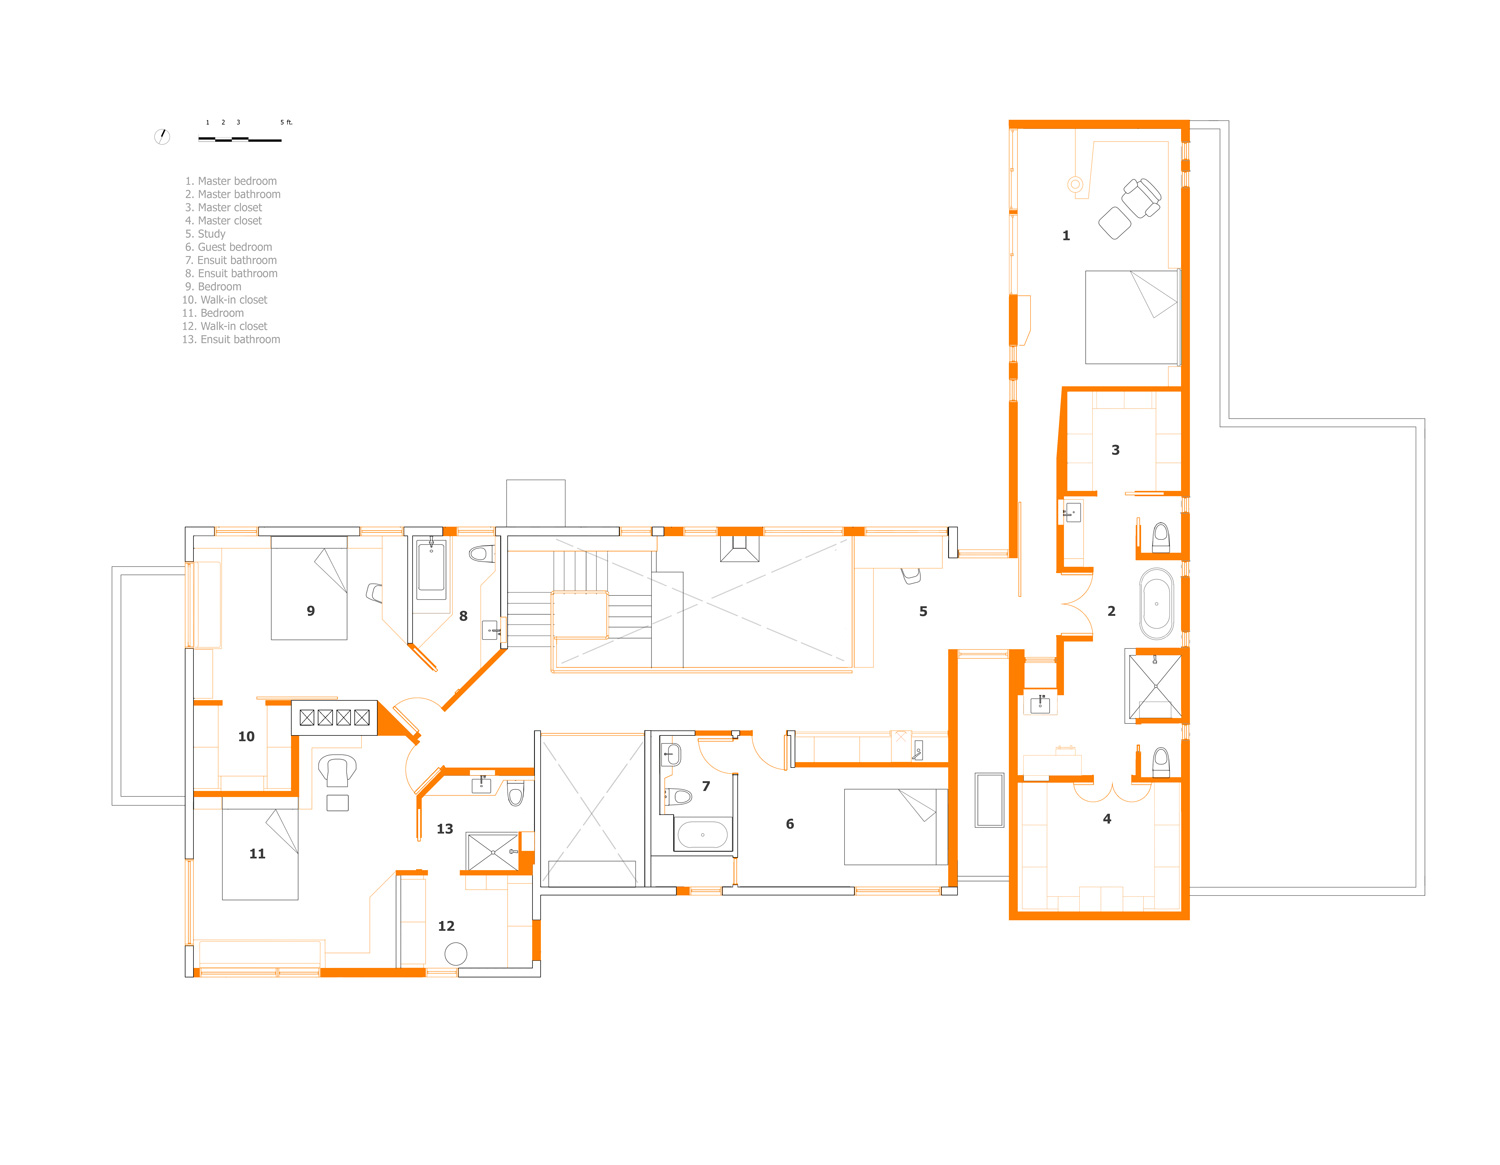 Unit 7 Architecture | Projects - Handsart Residence ZT - SECOND FLOOR PLAN